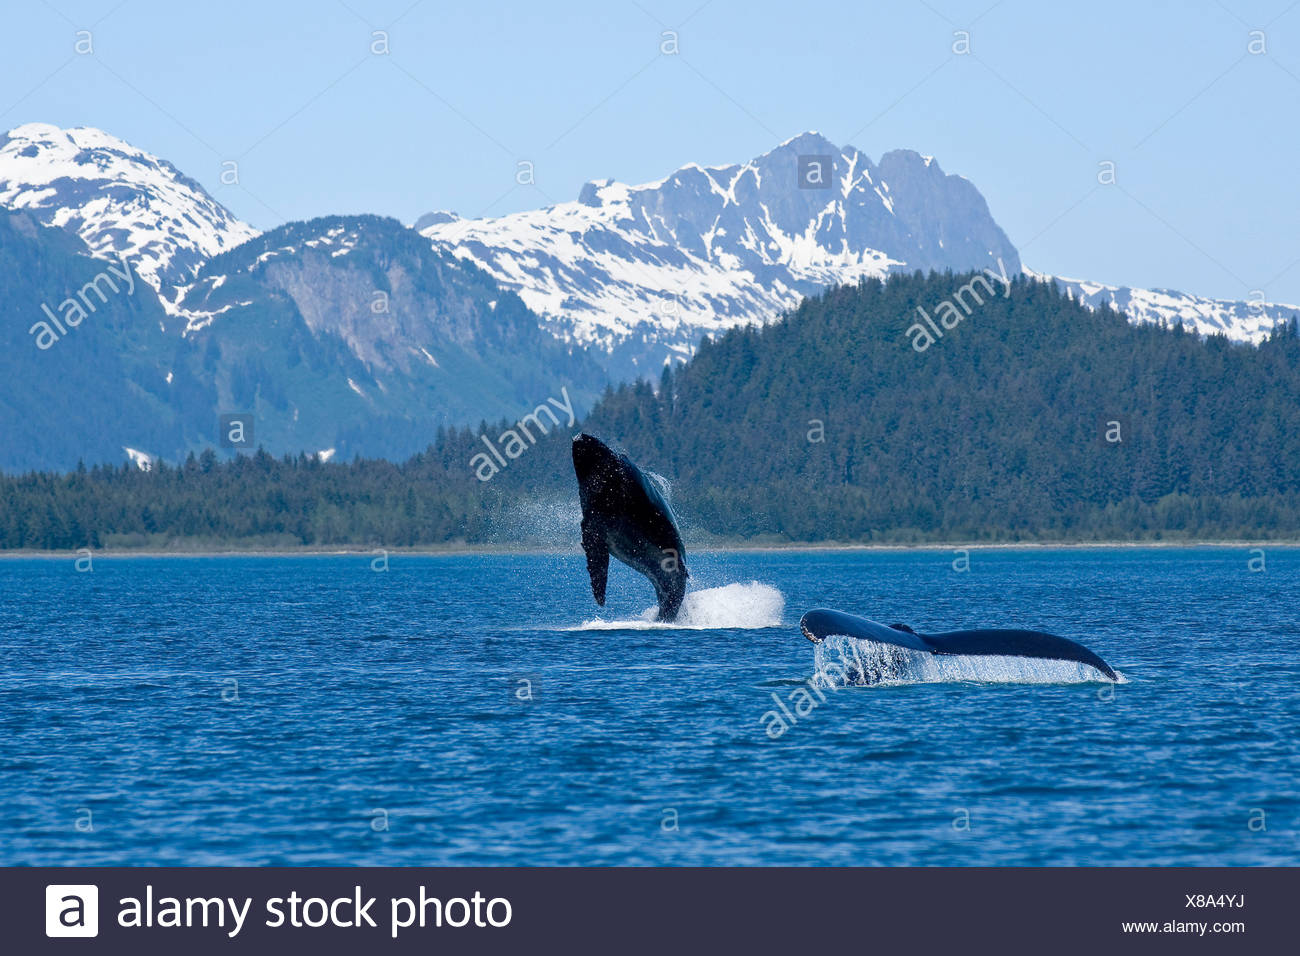 A humpback whale calf breaches as its mother swims at the surface nearby, Dundas Bay, Glacier Bay National Park, Alaska - Stock Image